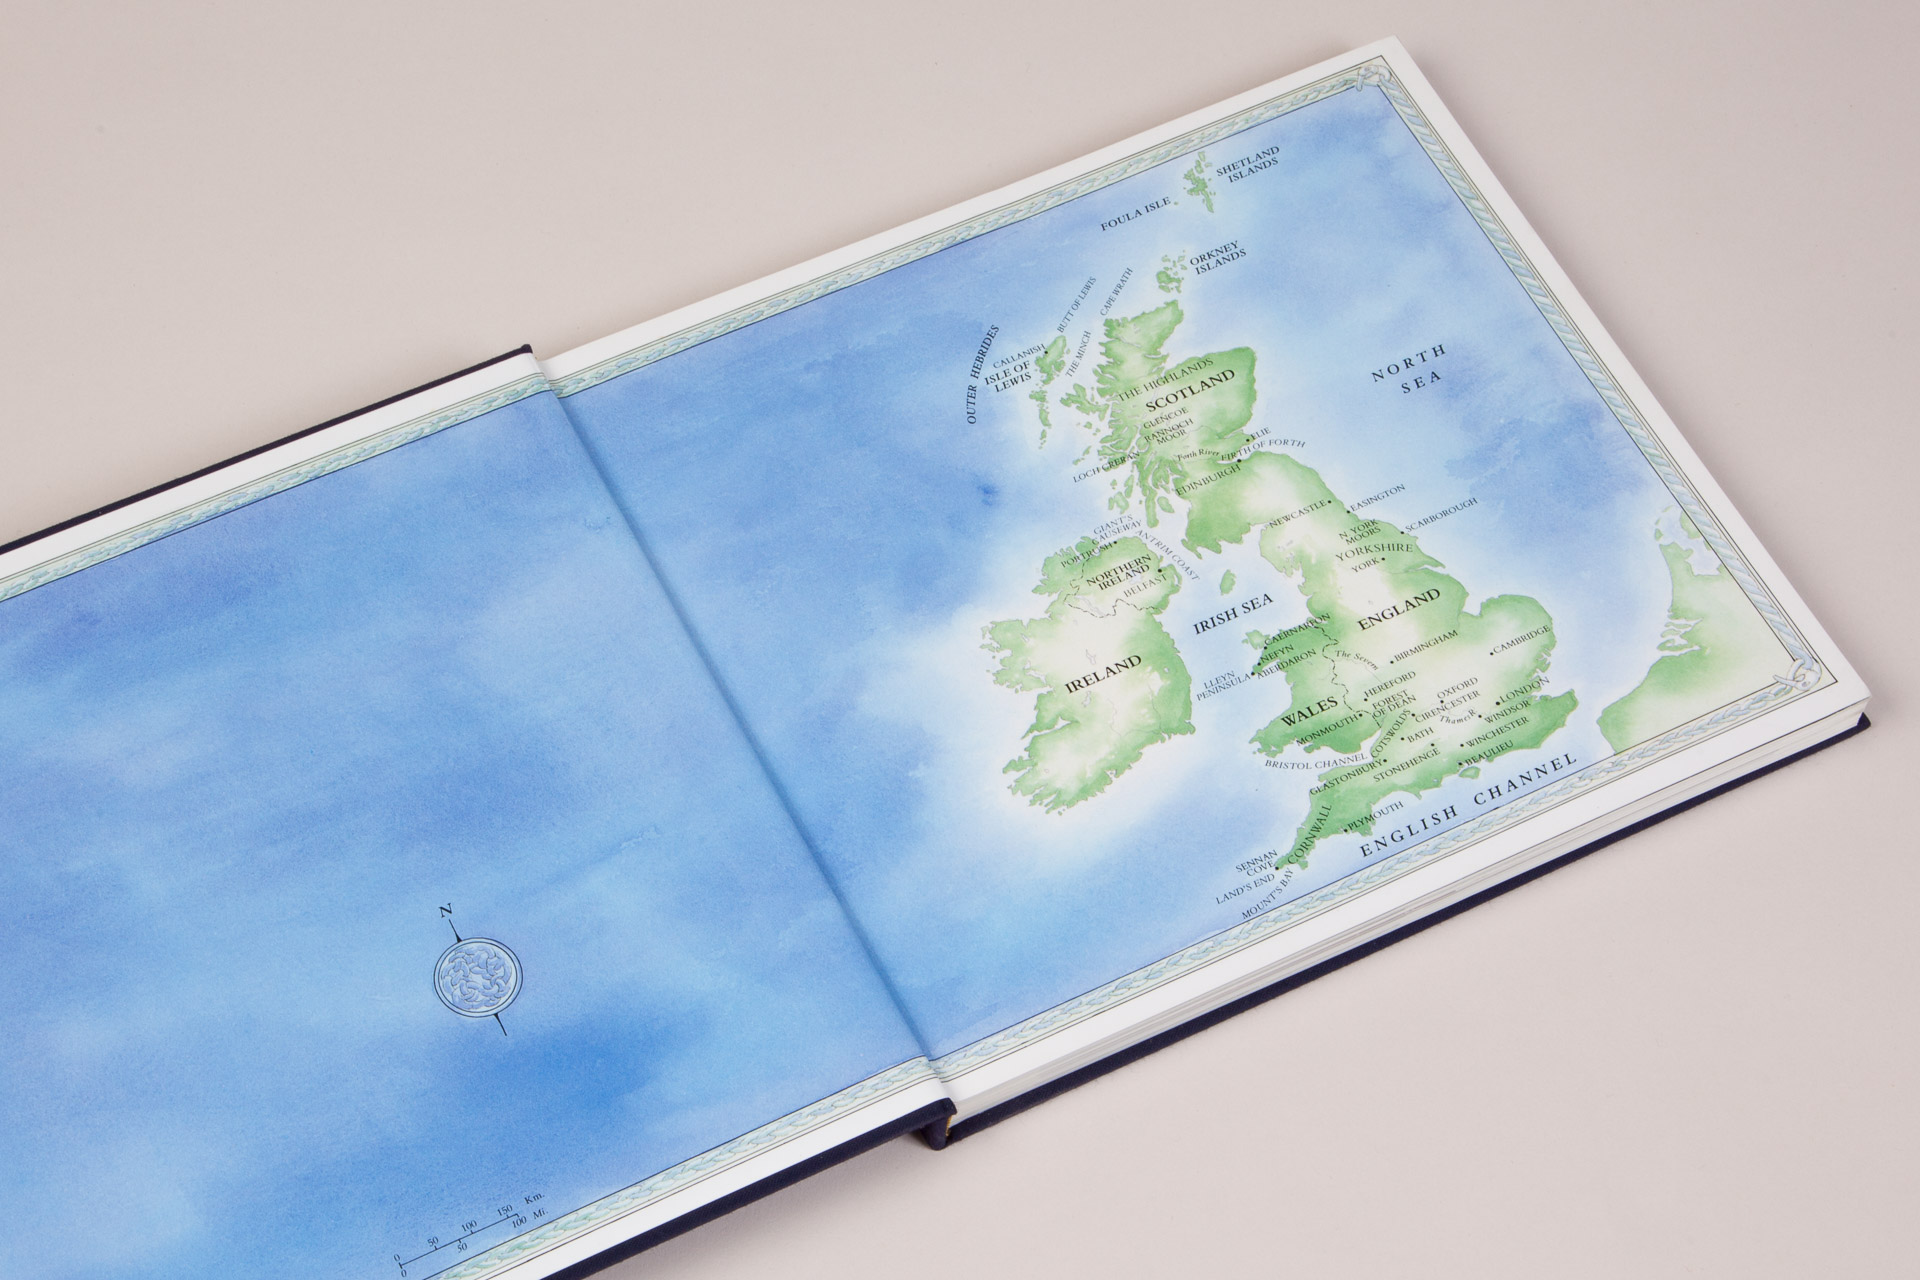 End papers for Portrait of Great Britain and Northern Ireland book • Turner Publishing